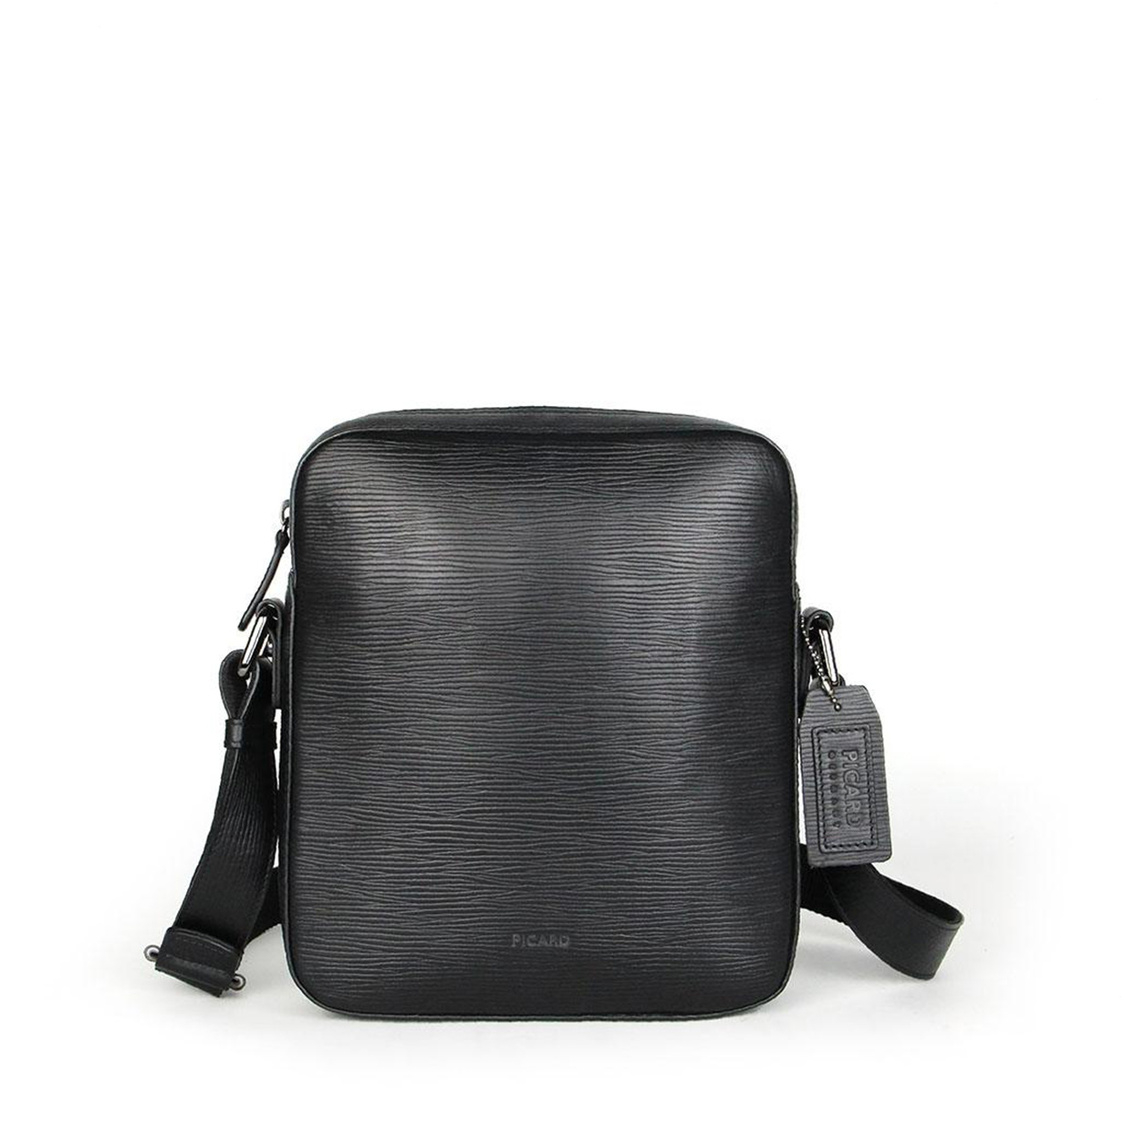 Porjus Shoulder Bag in Black